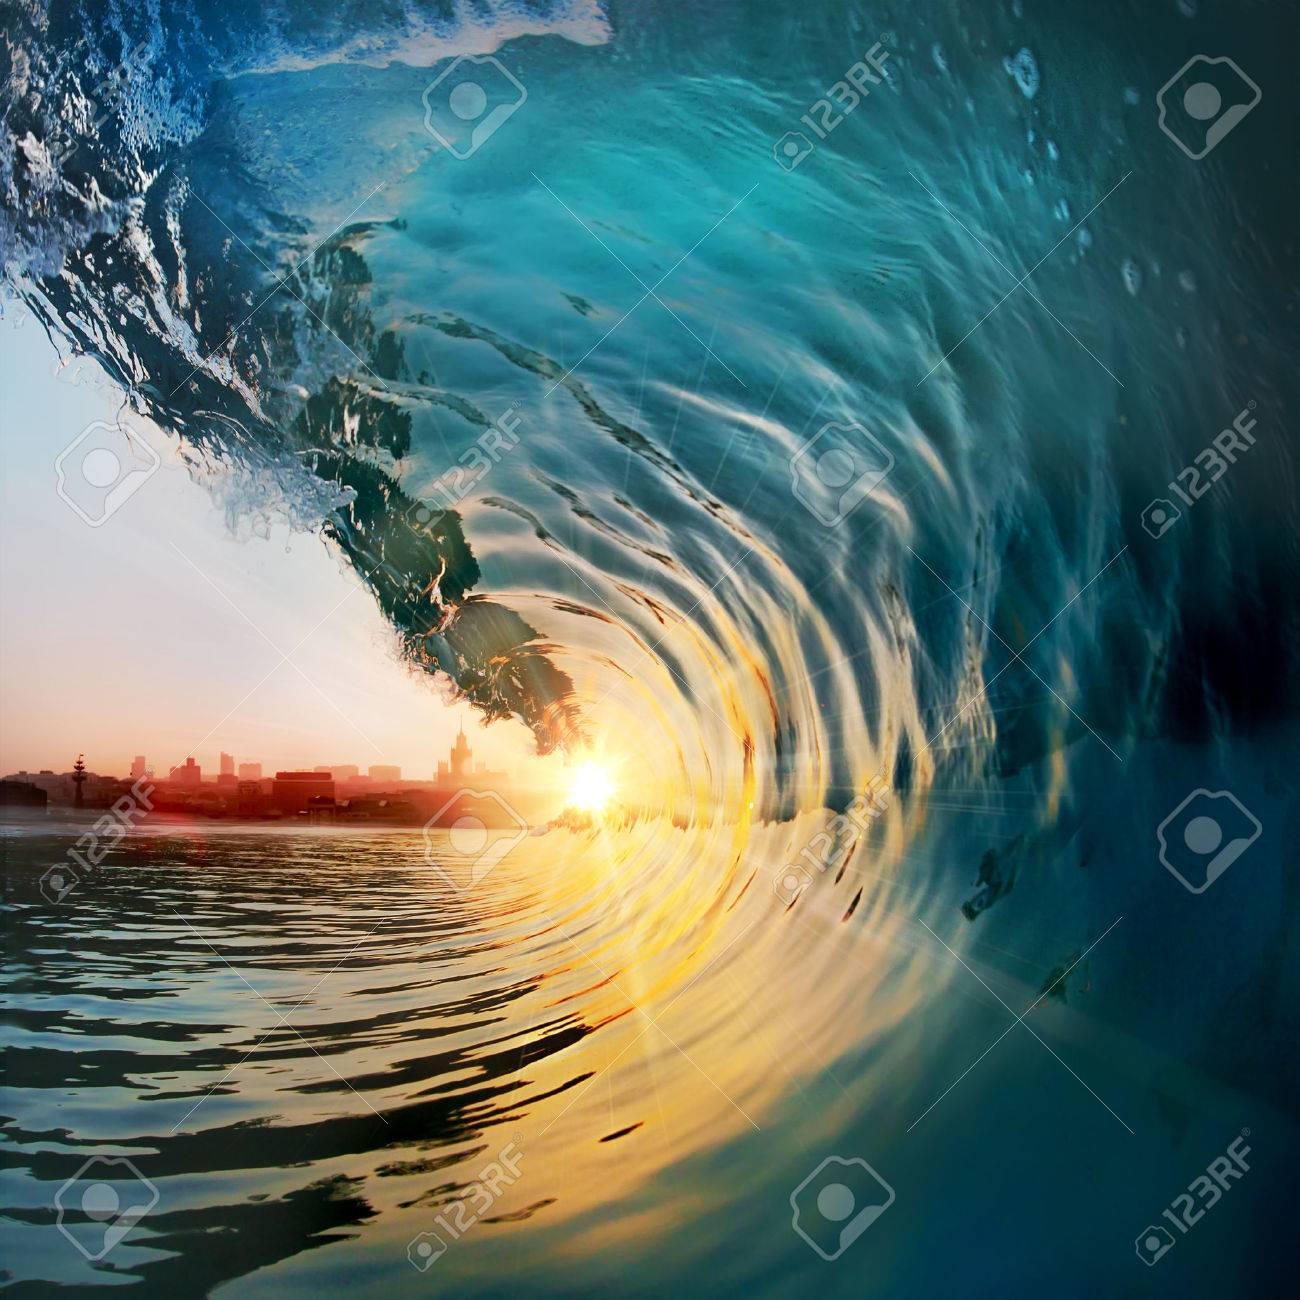 Beautiful ocean surfing wave at sunset beach. Tropical seaview design template Stock Photo - 60889208